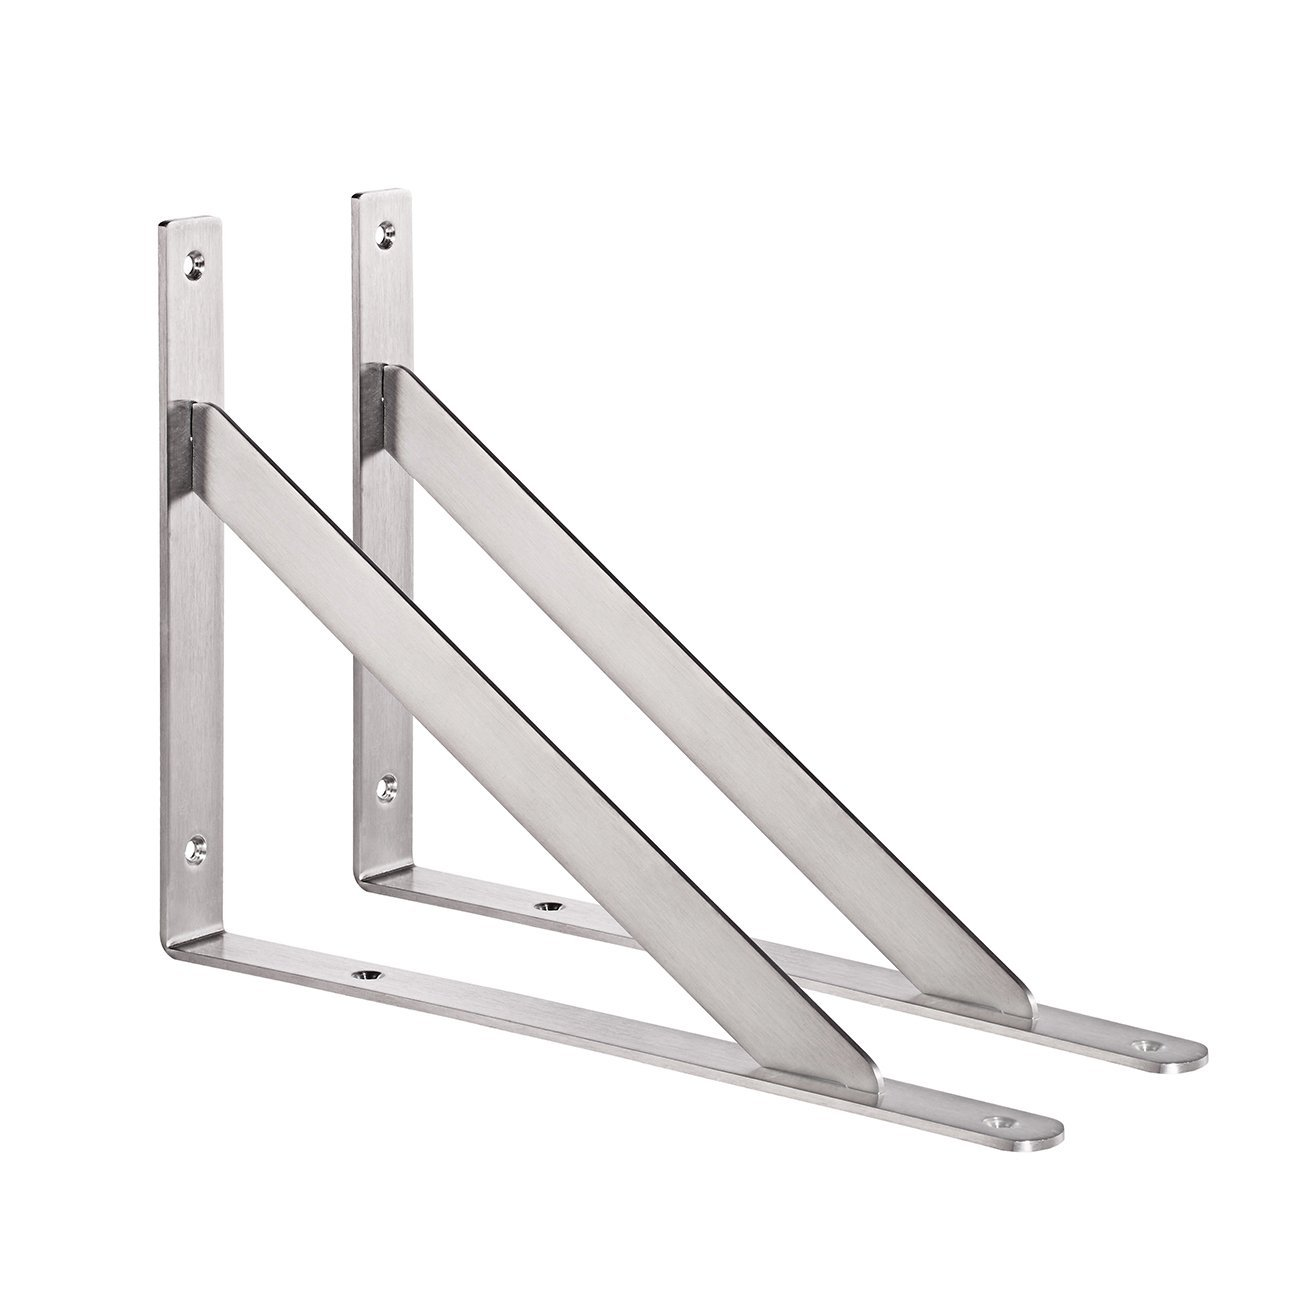 "YUMORE L Bracket, Heavy Duty Stainless Steel Solid Shelf Support Corner Brace Joint Right Angle Bracket, 14"" Pack of 2"